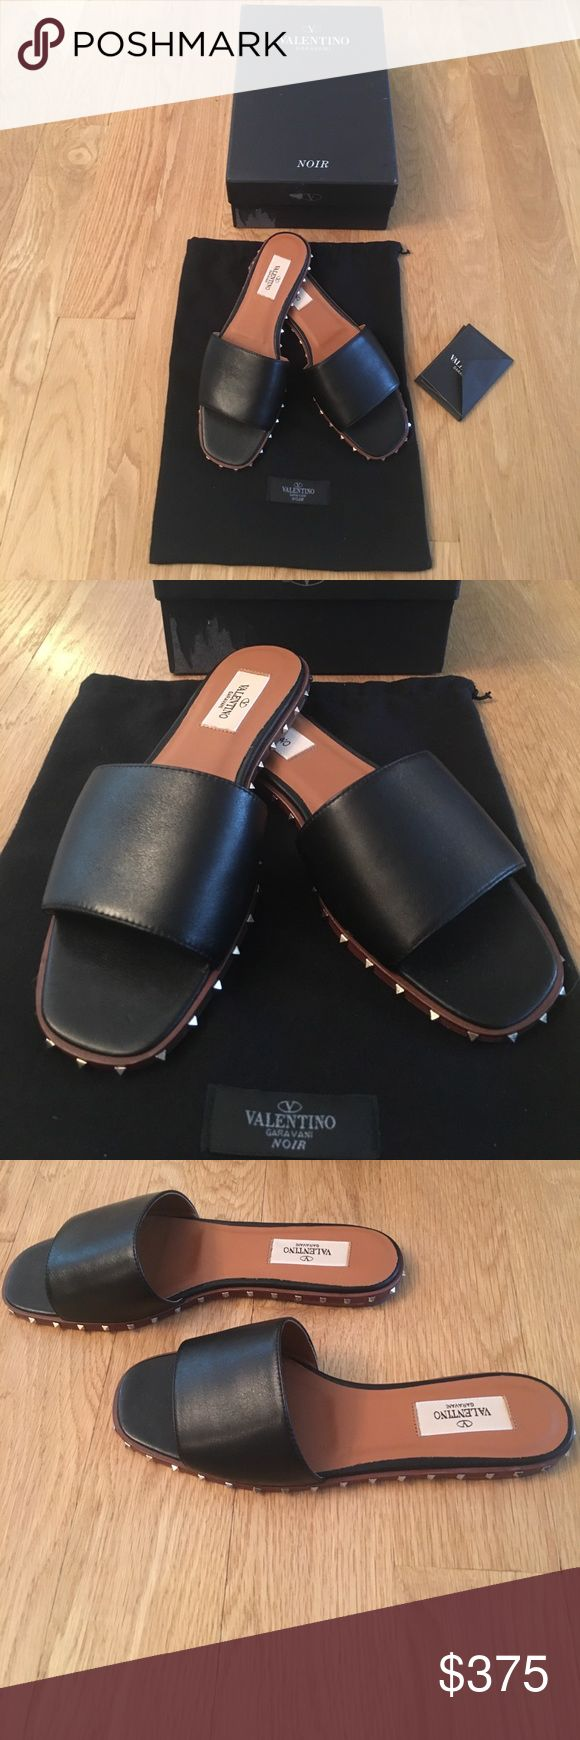 NWT Valentino slides NWT Valentino black leather slides with gold studs size 8/38. Authentic. Comes with box, card and dust bag. Bought these and they are just a hair too small on my foot that's a little bugger. Would fit 7.5-8. Beautiful quality shoes !!!! Please don't lowball. I will ignore all low ball offers. These have been tried on only and in box. Exactly the condition they were purchased from a reputable seller here on Poshmark. The last pic is from the current Nordstrom website…